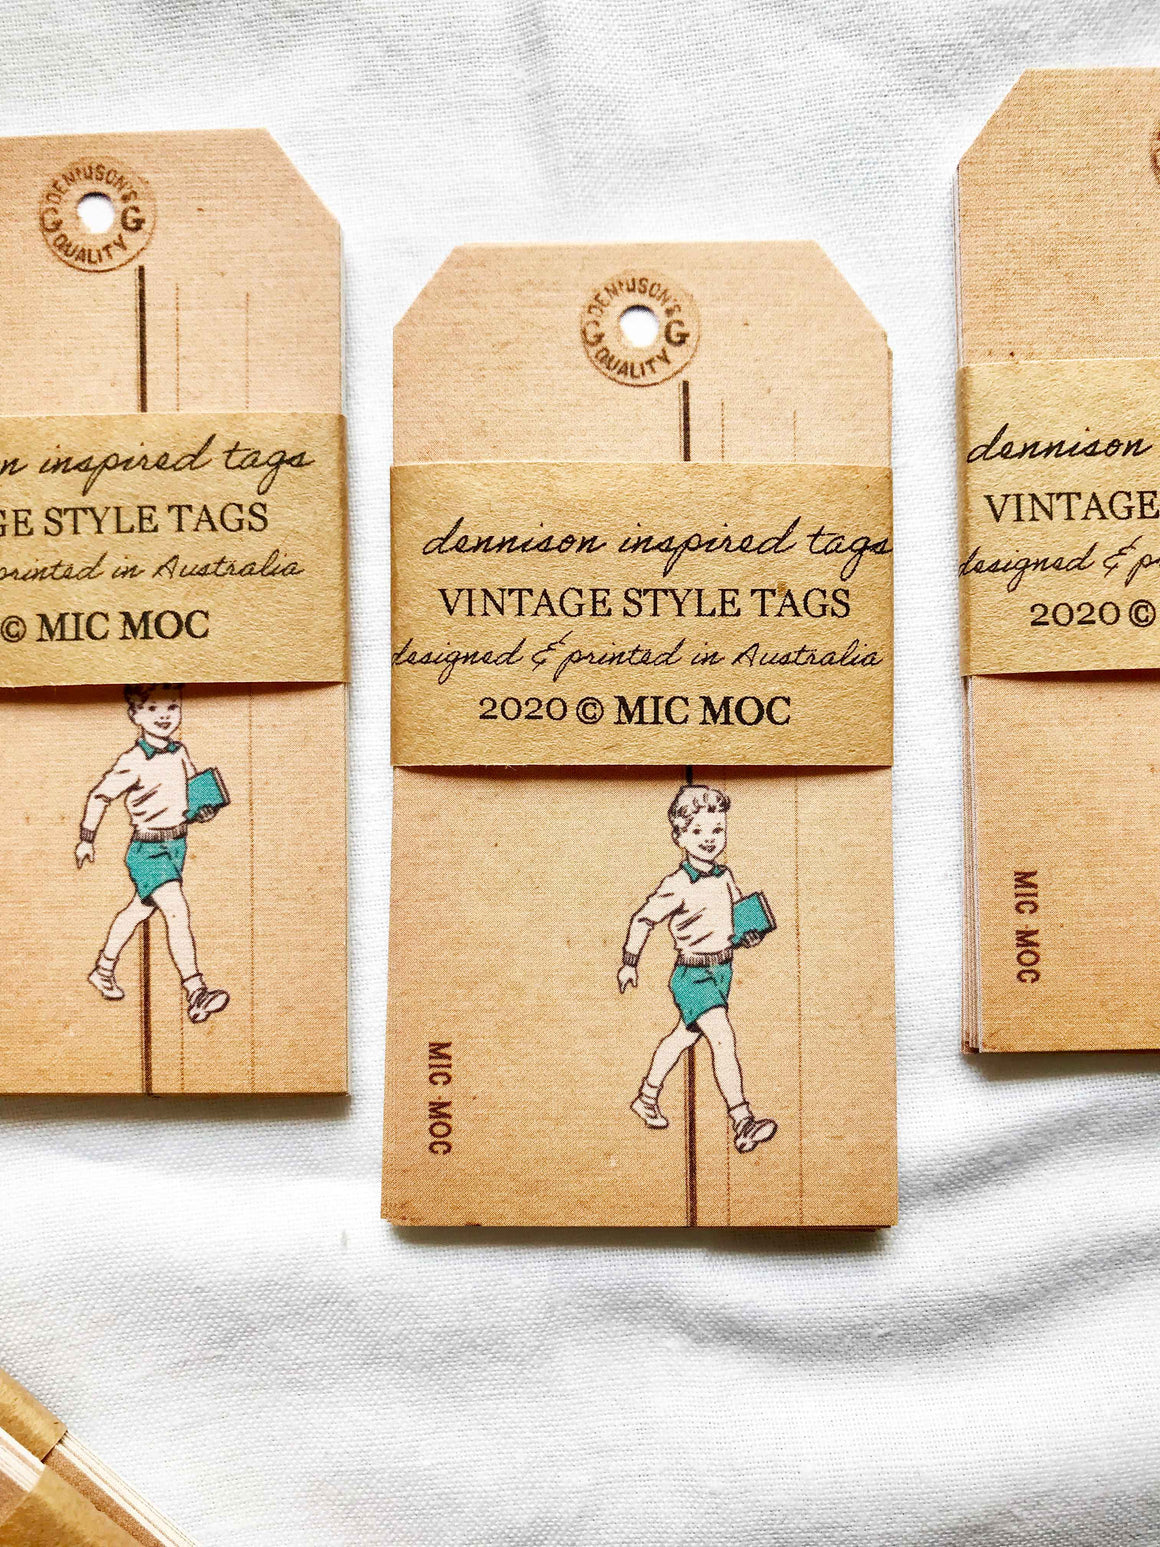 Vintage Style Tag  - VST 001 'Dennison-inspired Tag' from micmoc.com